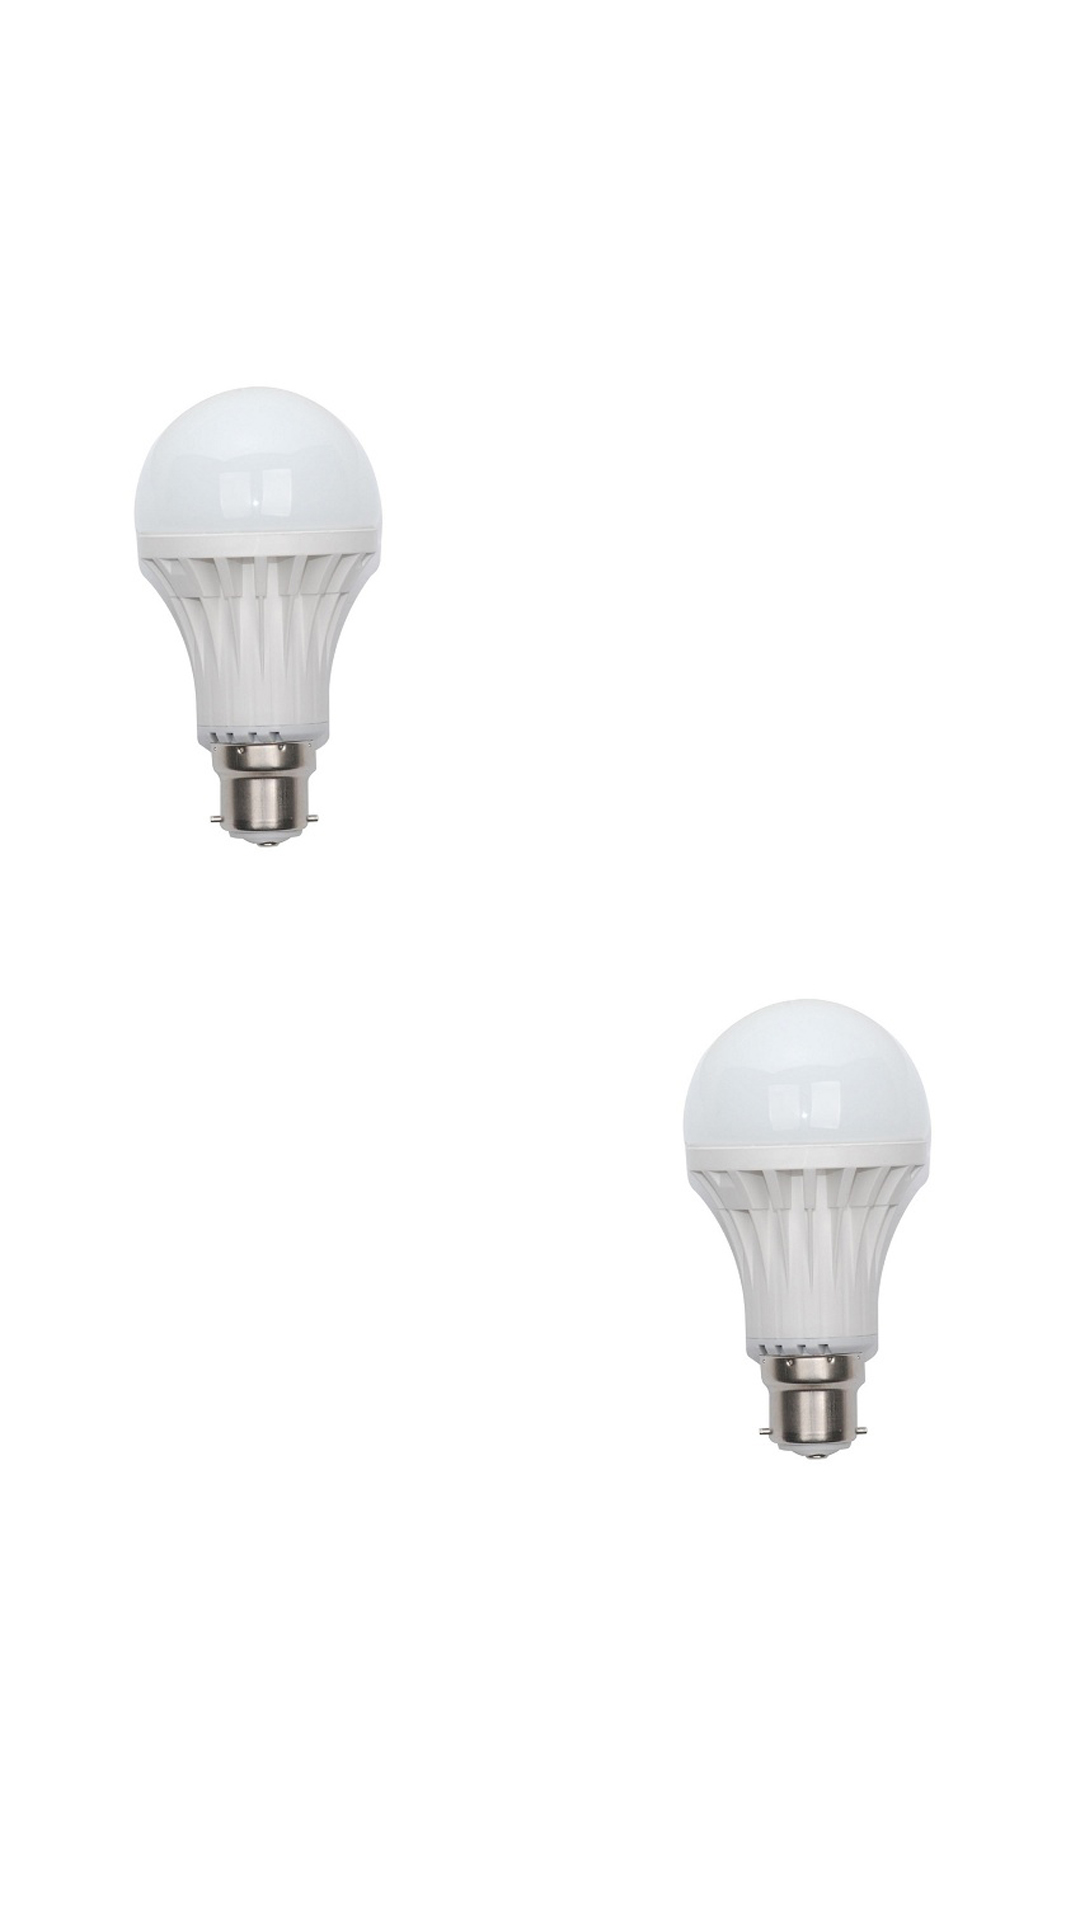 101 Lighting 10W White LED Bulb (Pack Of 2)